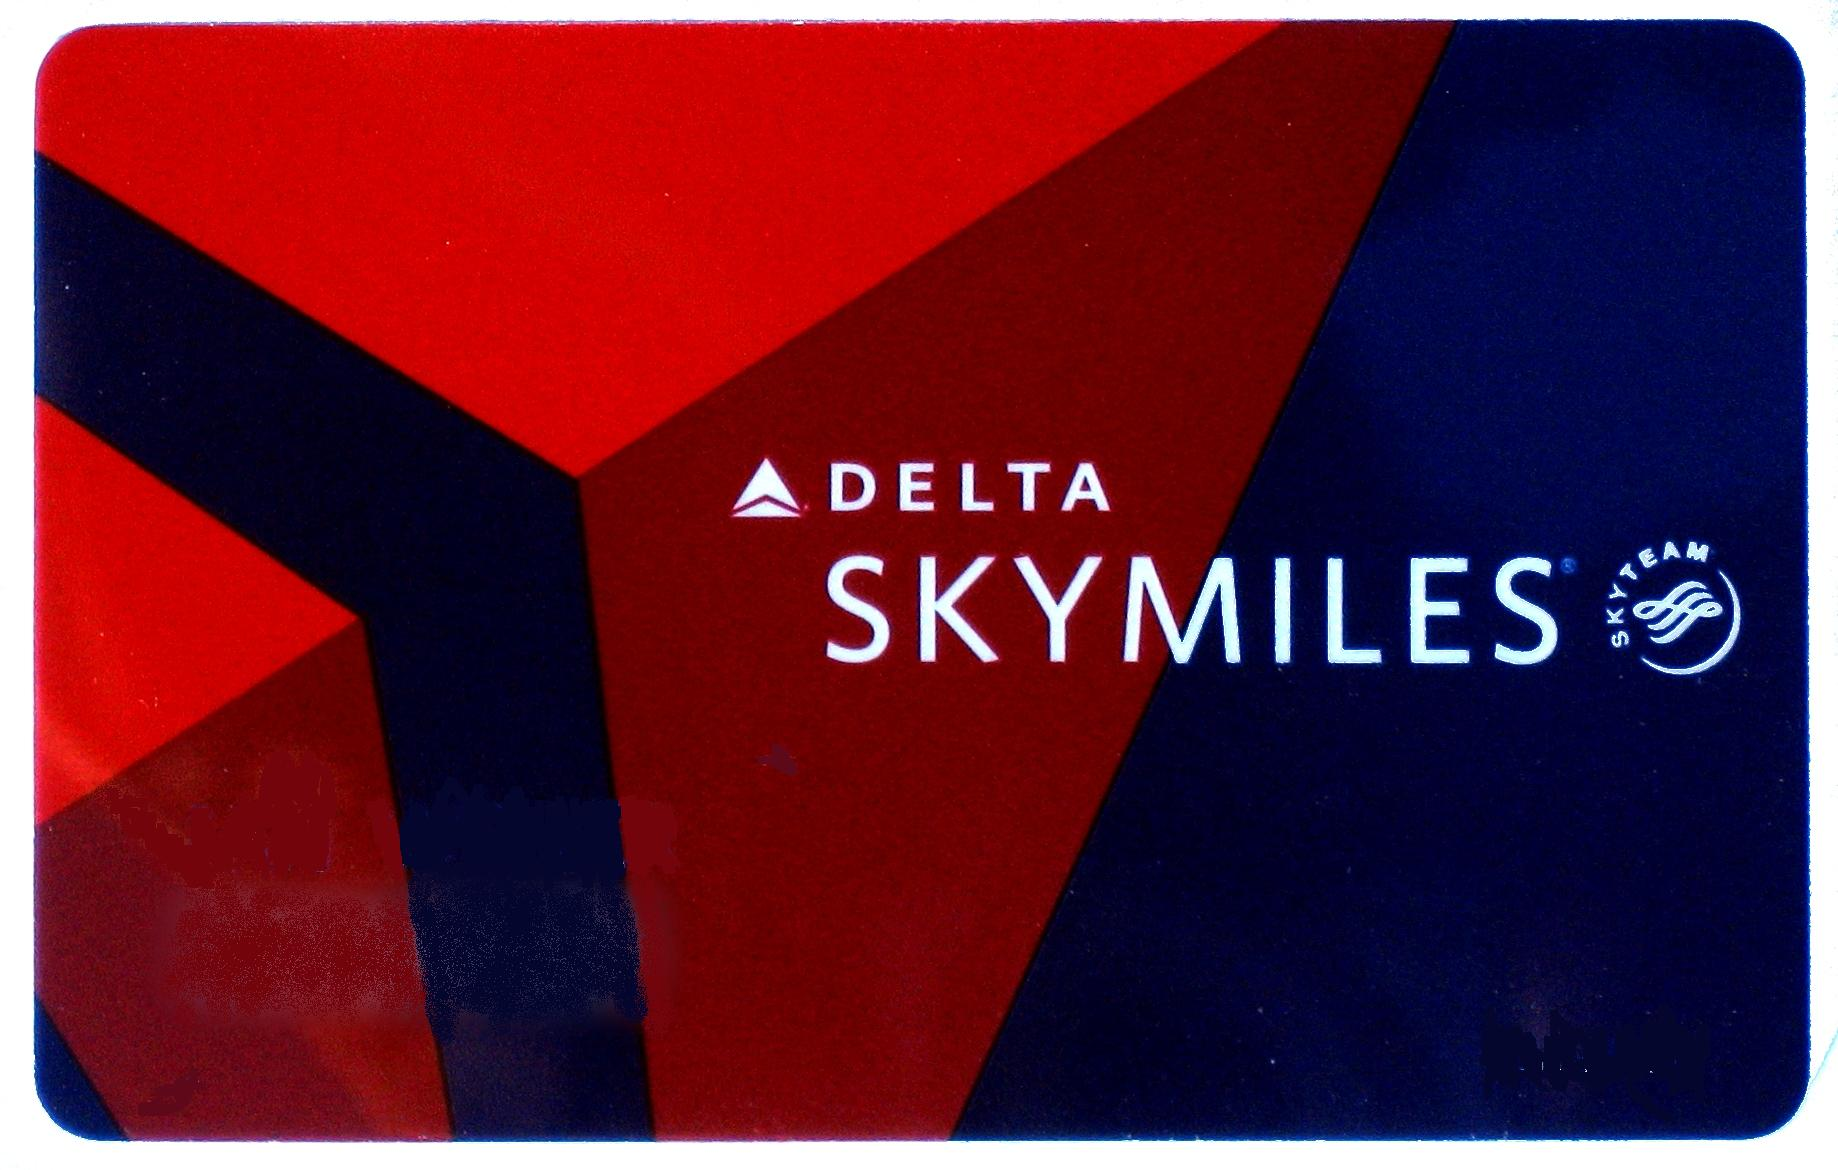 Skyteam archives us credit card guide in a beginners guide to delta skymiles and basics of airline miles redeeming we mentioned that delta has the problem of blackout dates when exchanging reheart Images